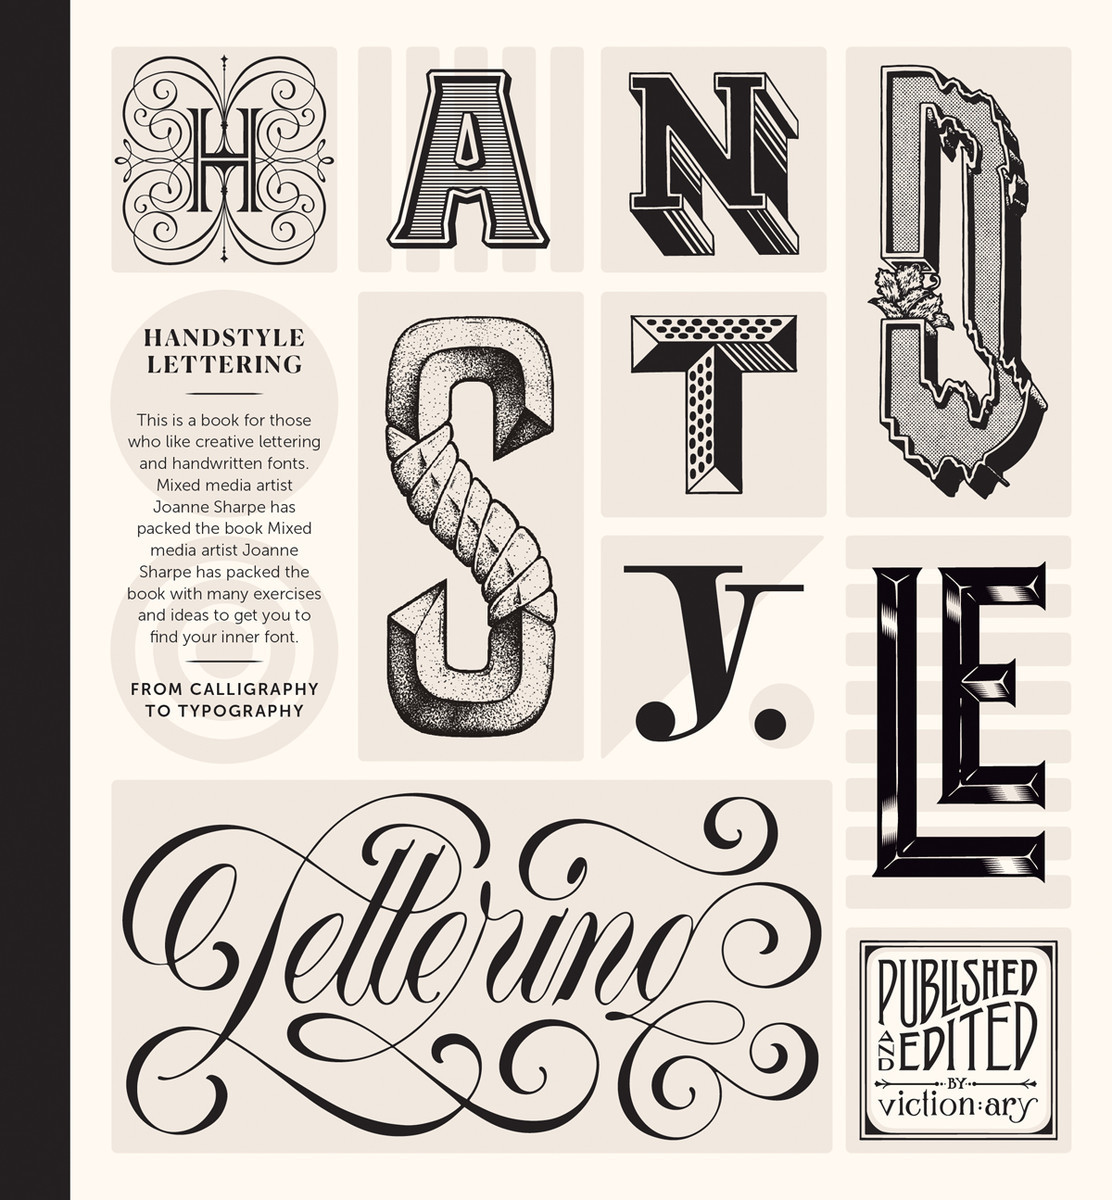 HANDSTYLE LETTERING /ANGLAIS